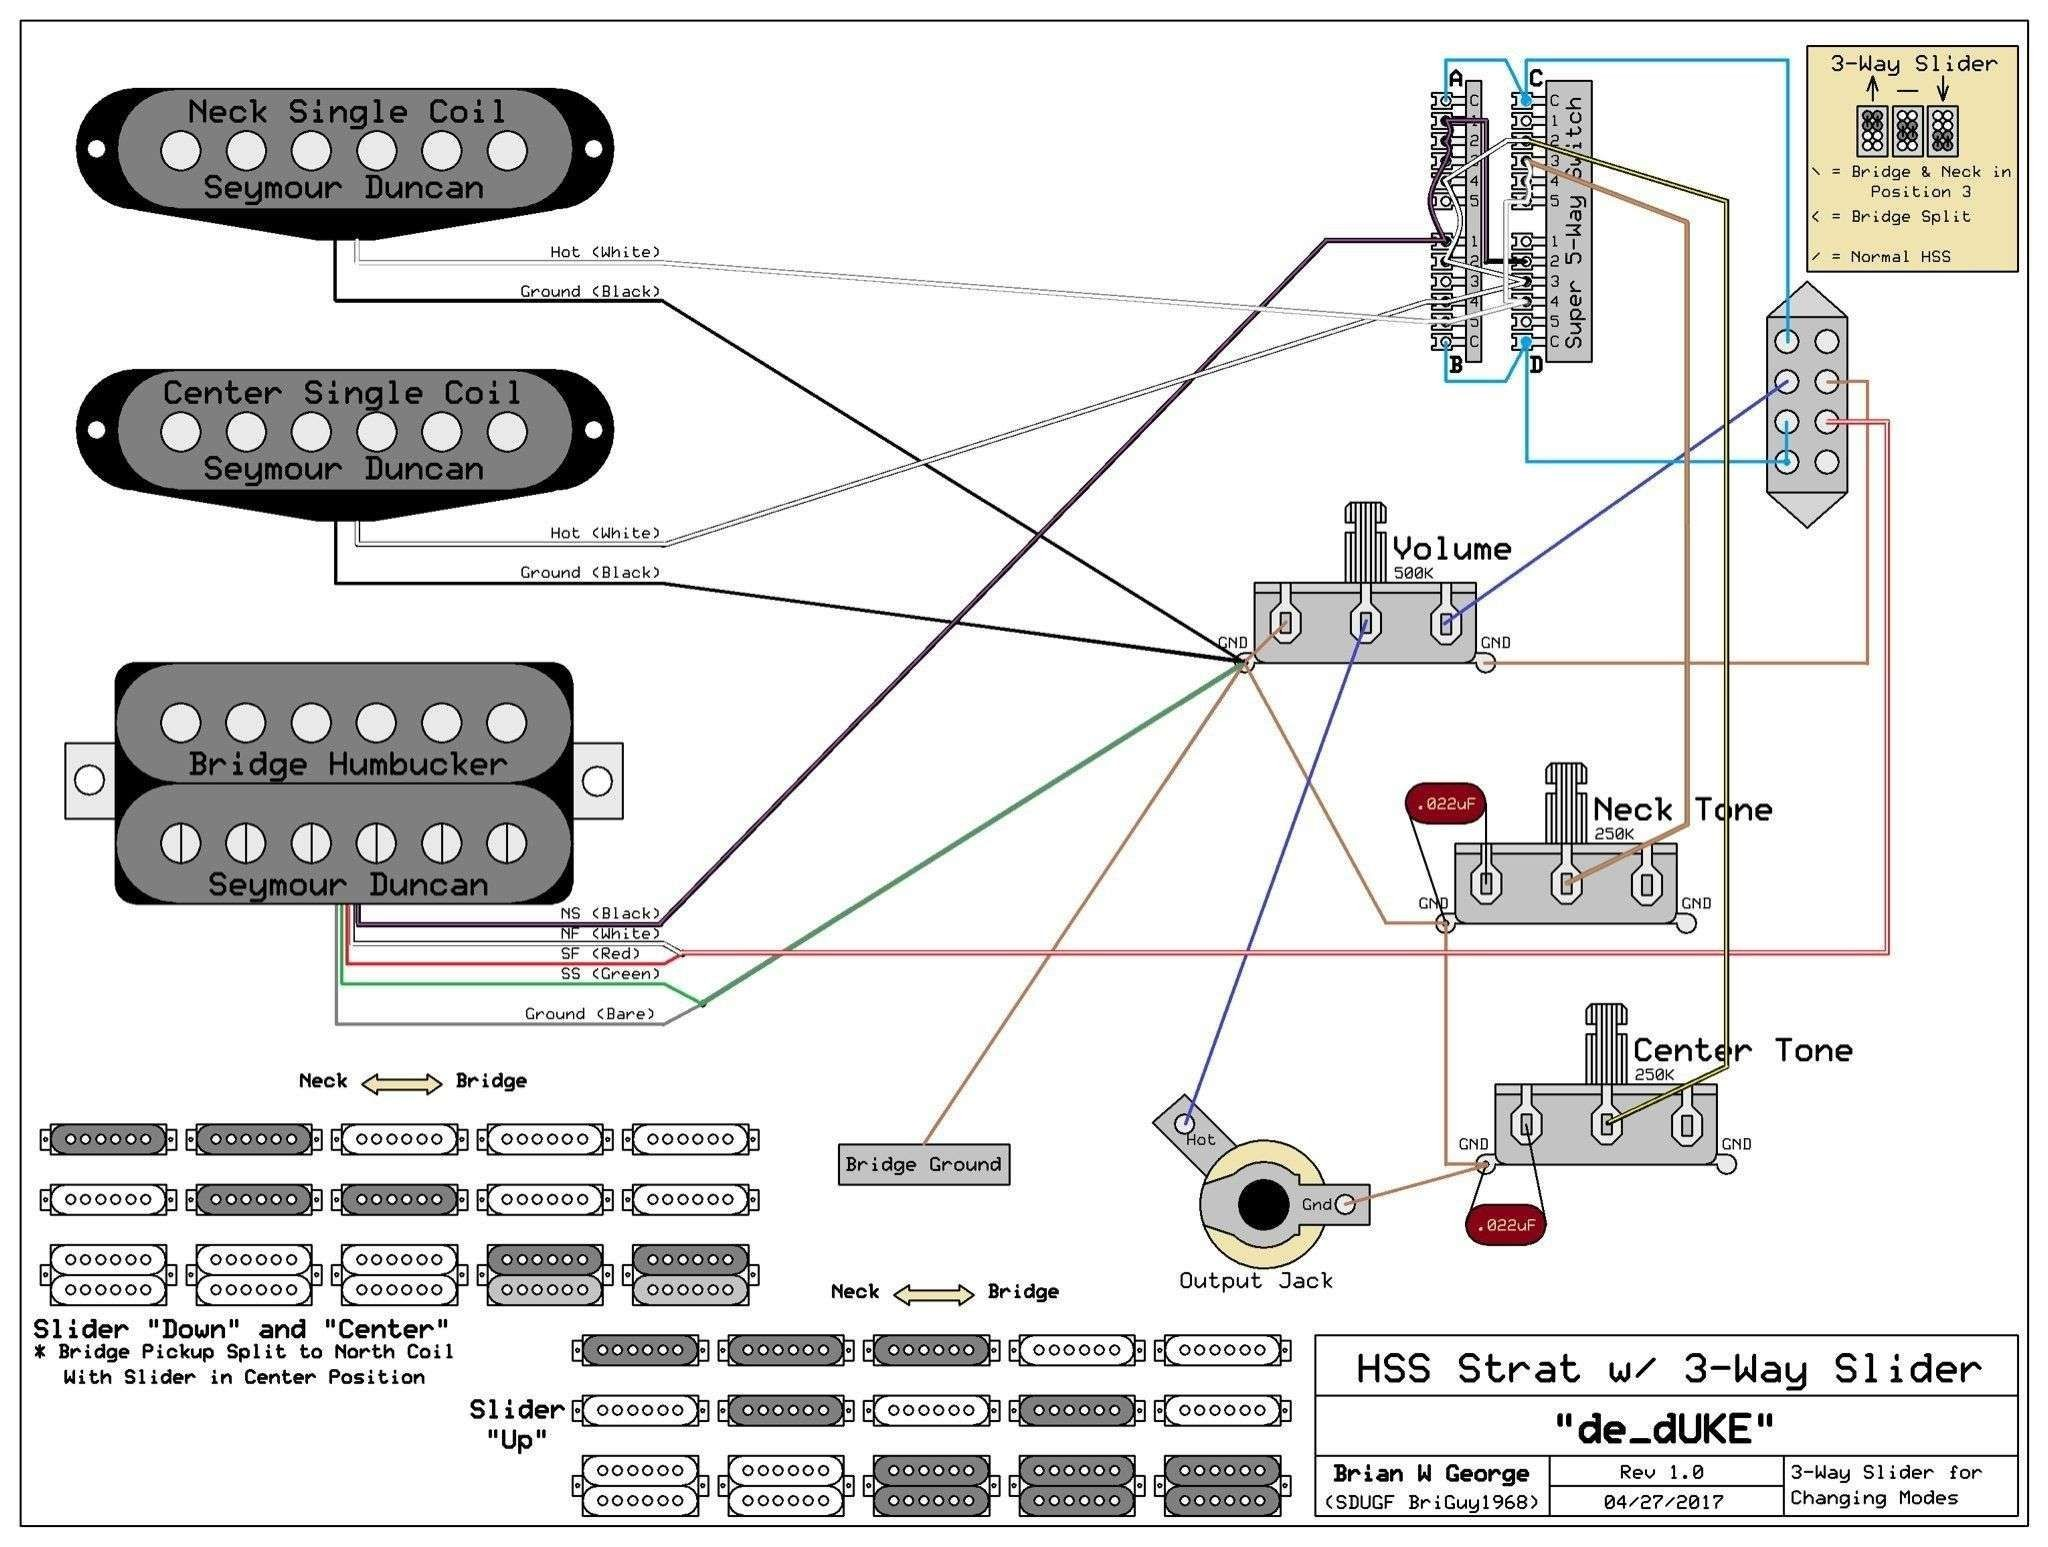 Gibson 3 Way Switch Wiring Wiring Diagram 3 Way Switch with Images Of Gibson 3 Way Switch Wiring Wiring Diagrams for Guitars